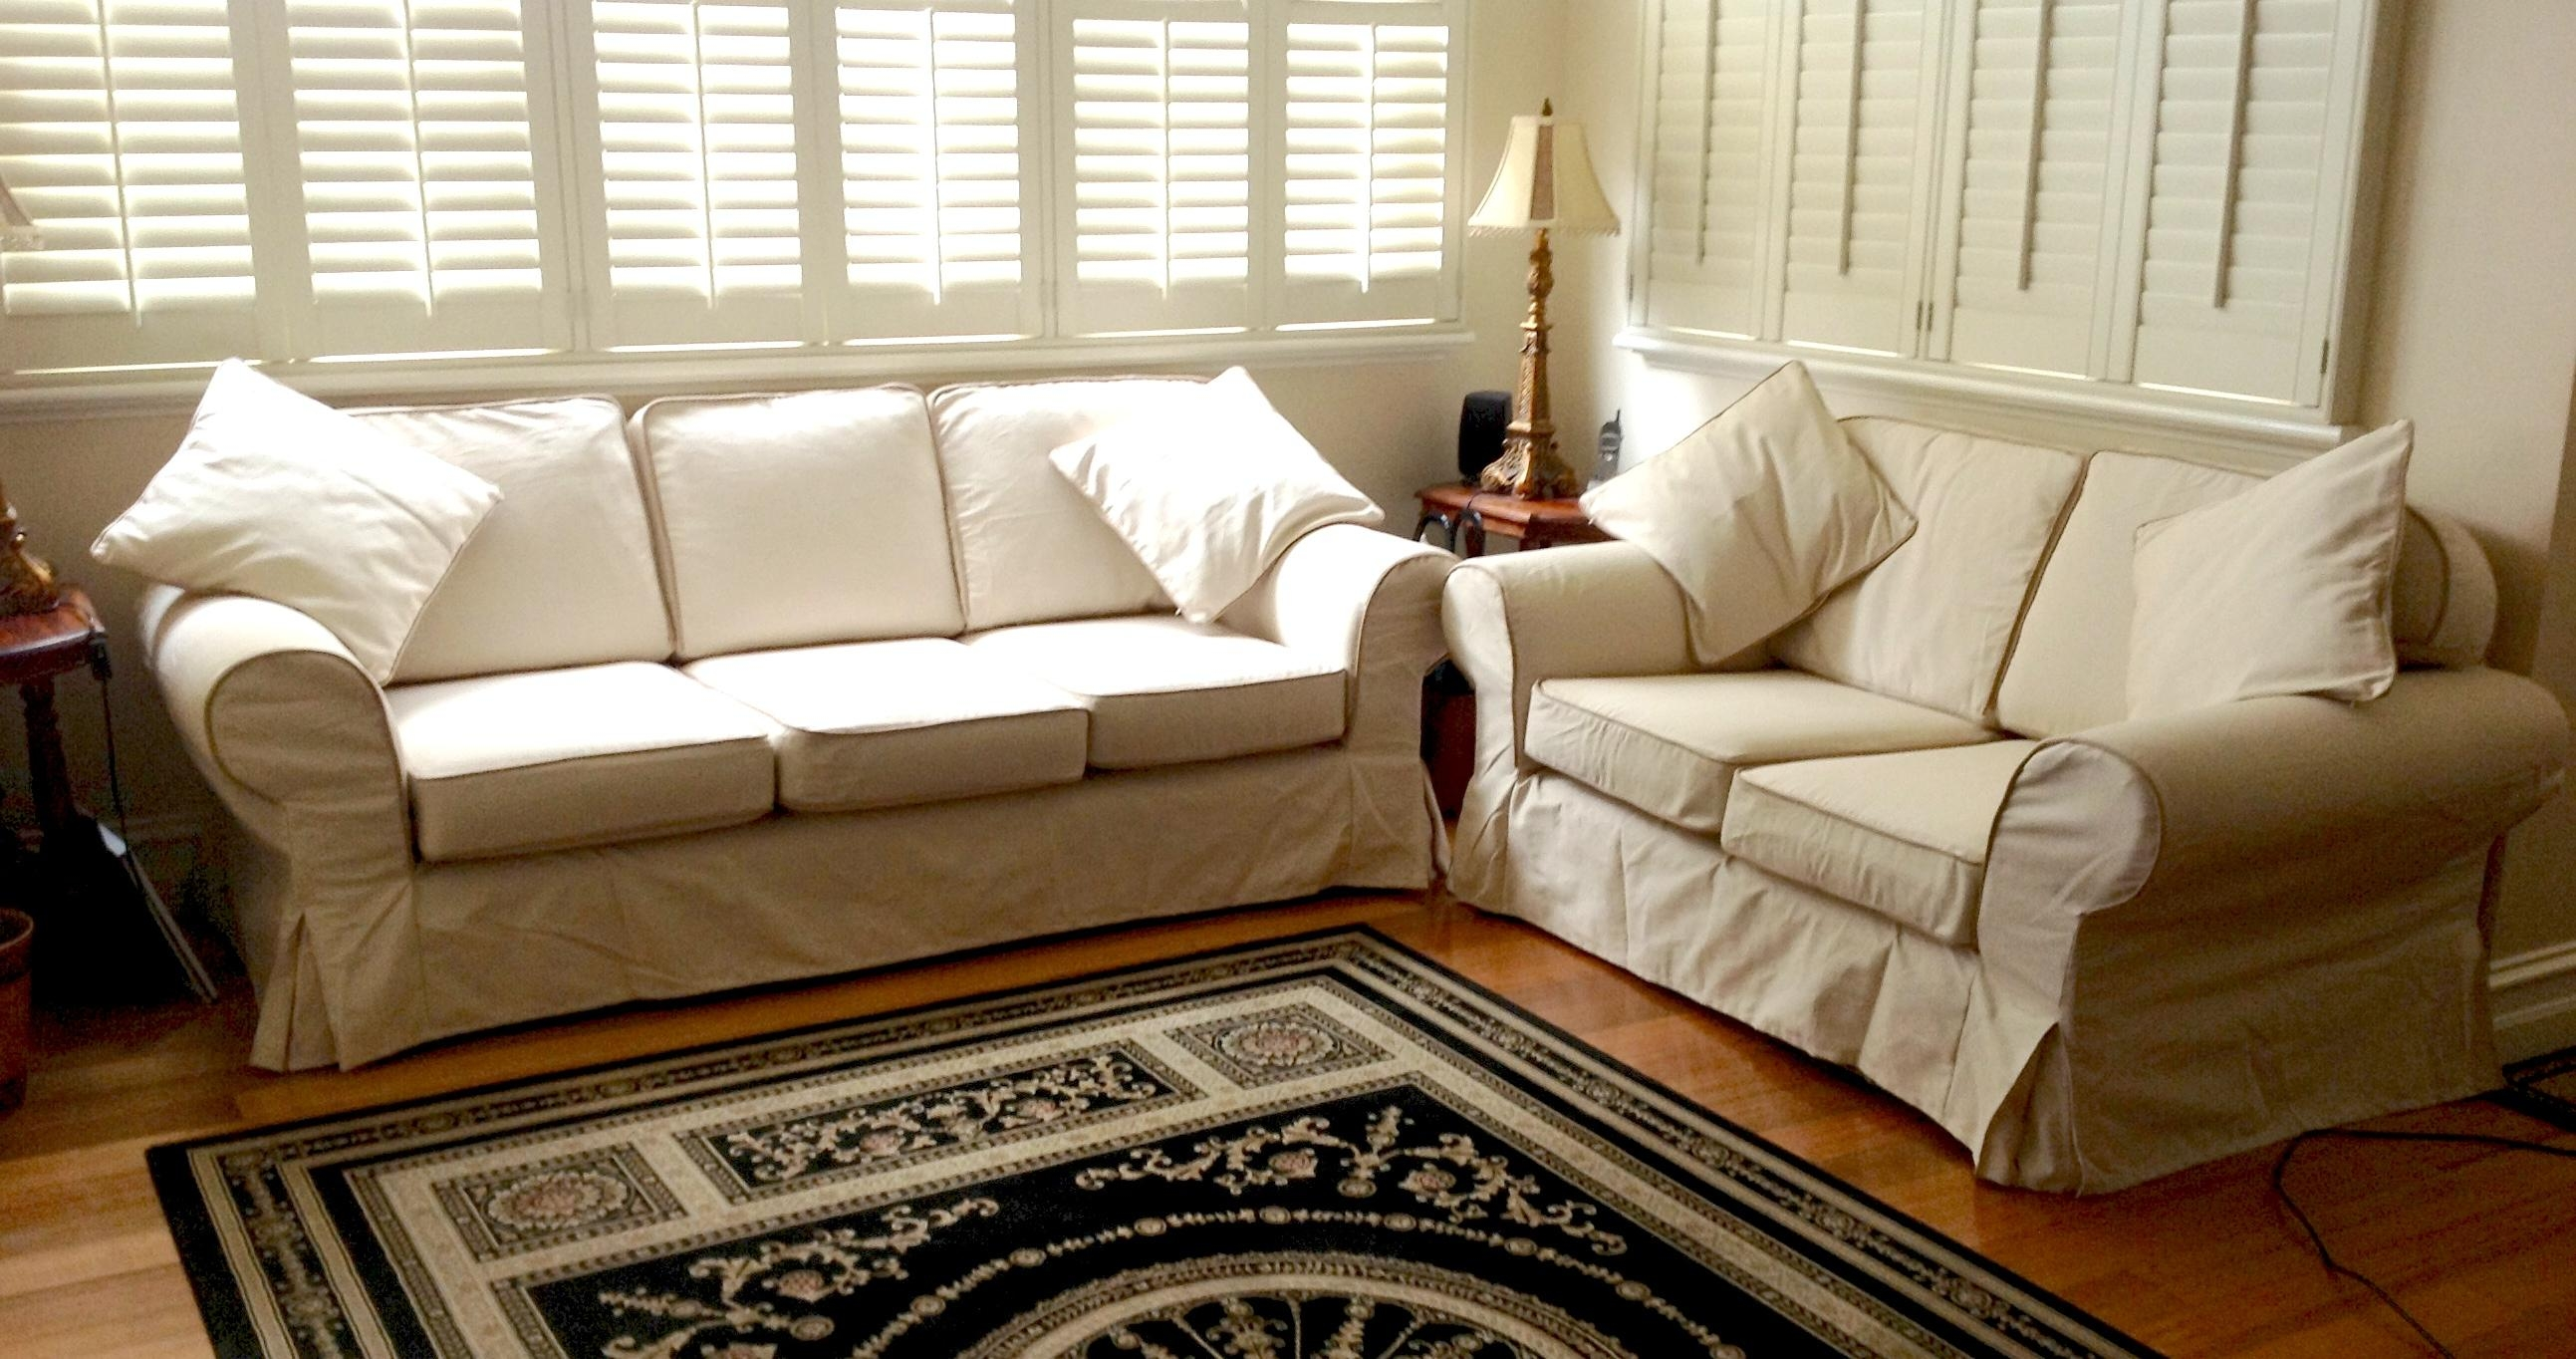 Custom Slipcovers And Couch Cover For Any Sofa Online Pertaining To Sofa Settee Covers (View 13 of 22)